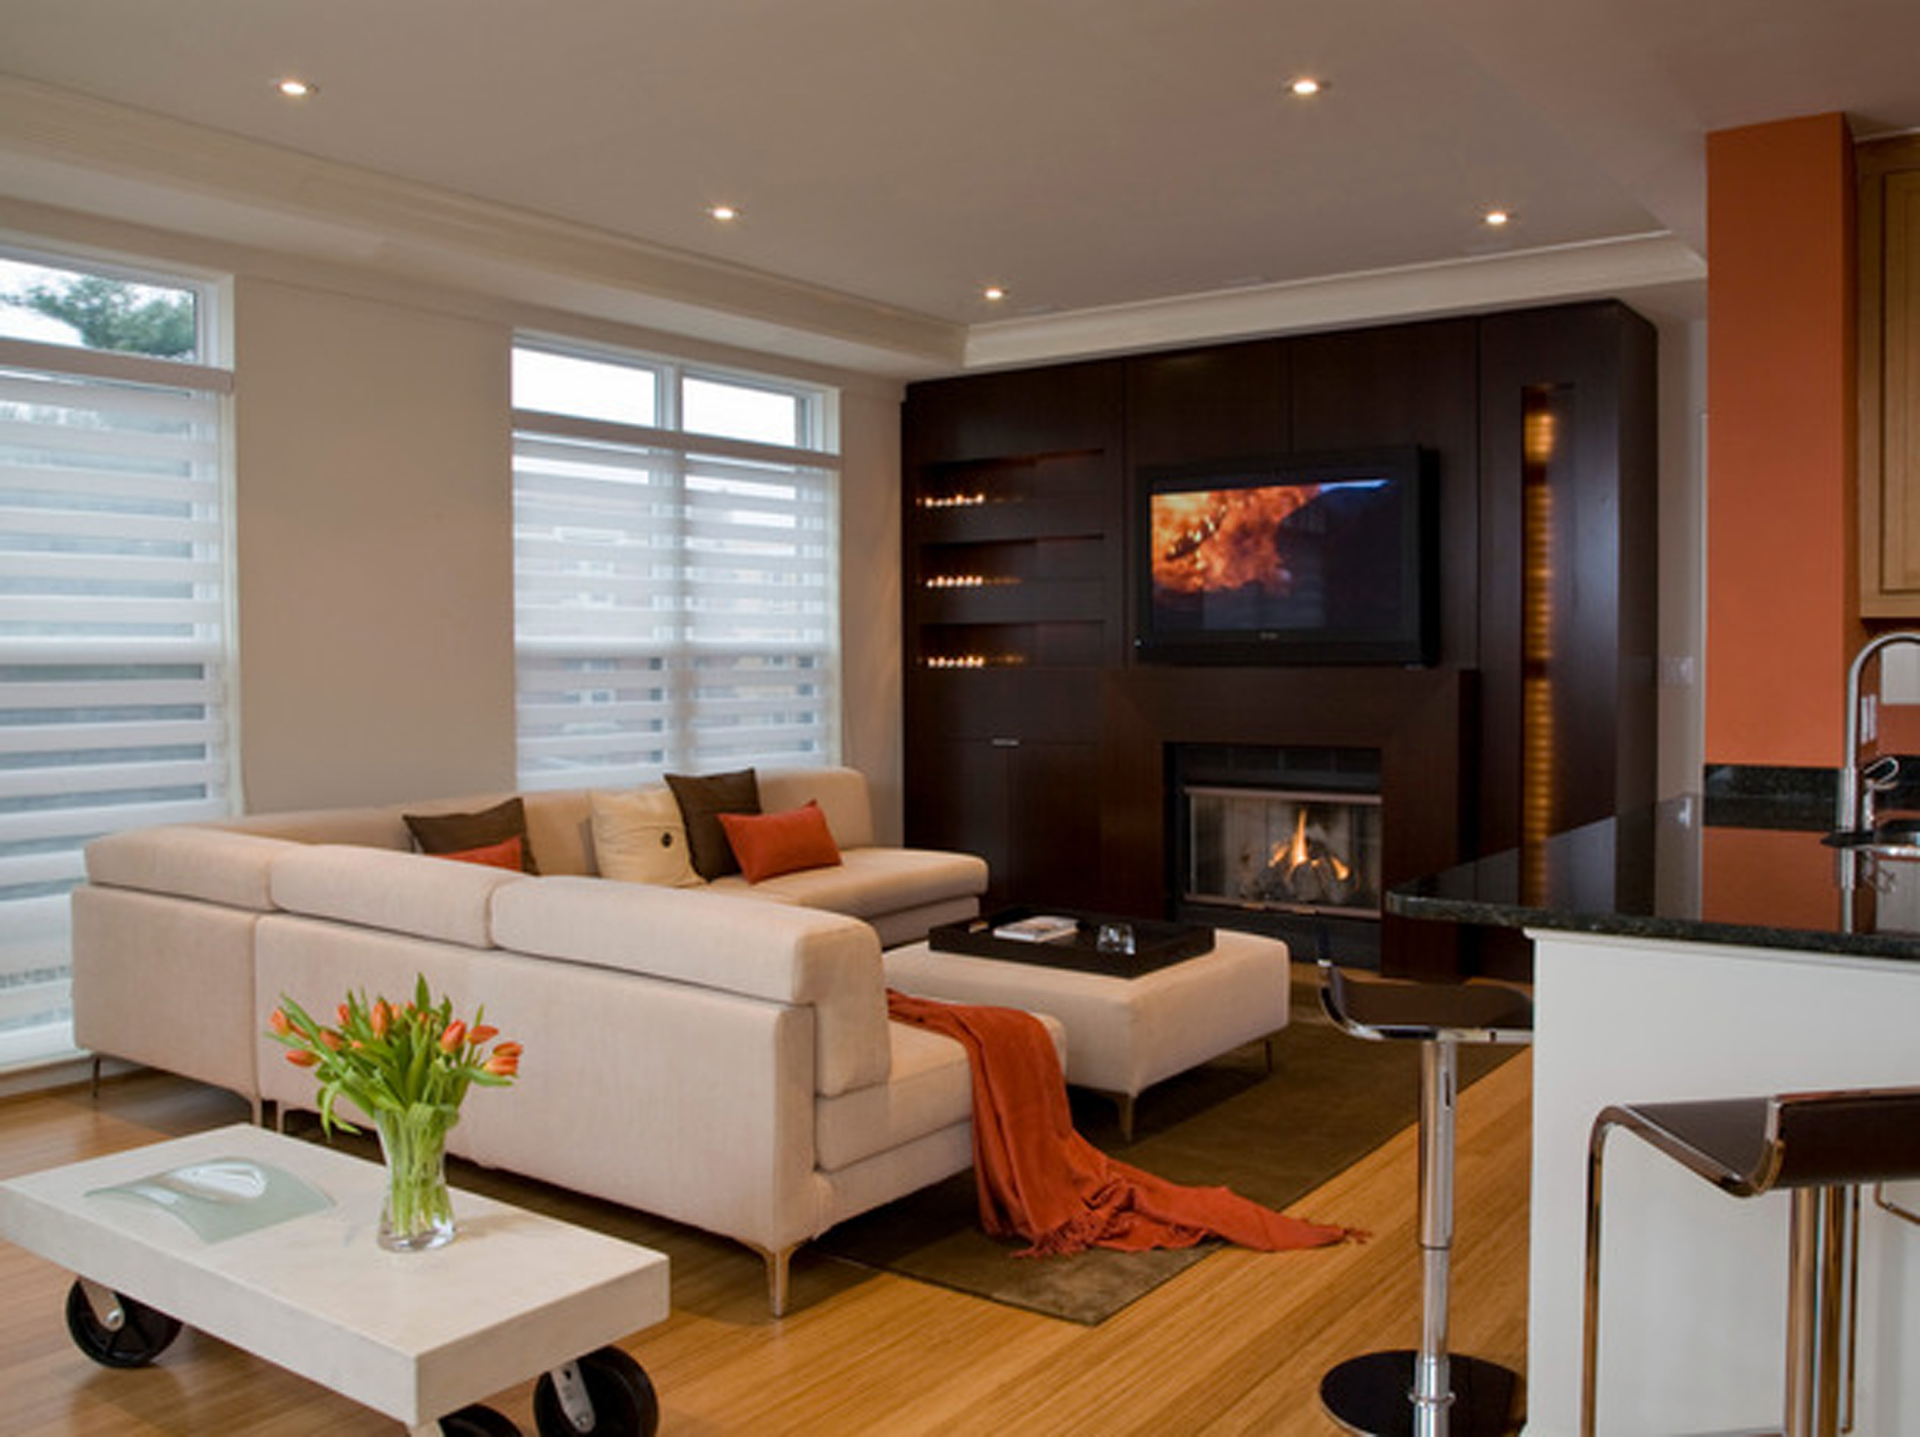 Remarkable Modern Living Room with Fireplace and TV 1920 x 1437 · 865 kB · jpeg